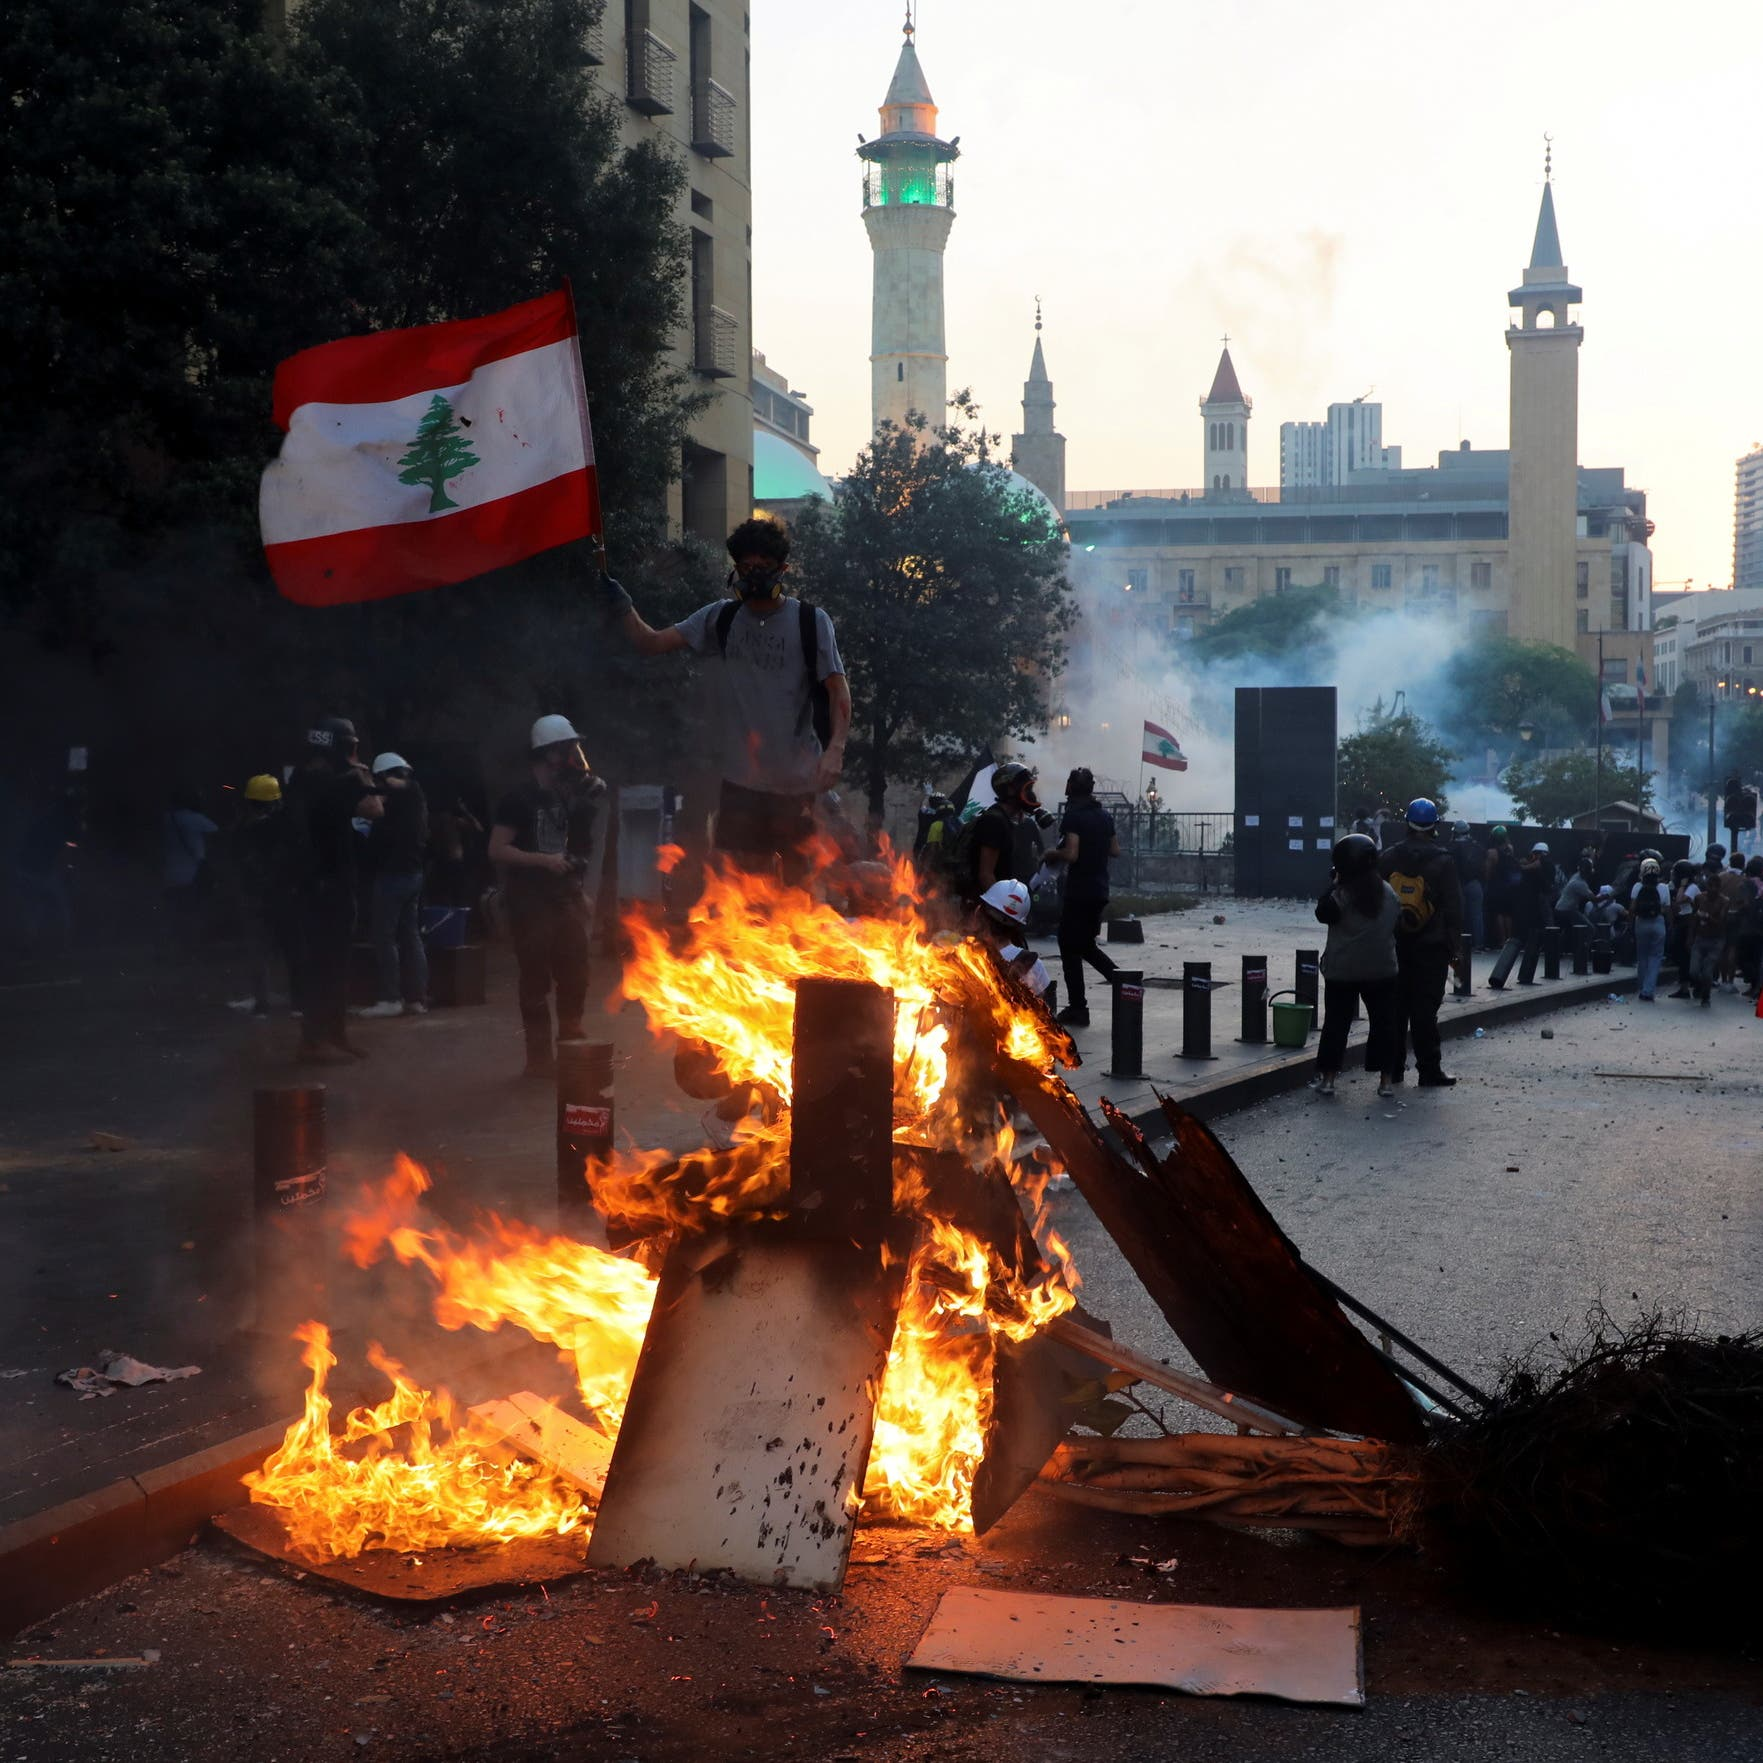 'Iran out:' Anti-Hezbollah protesters march in Lebanon on Beirut blast anniversary